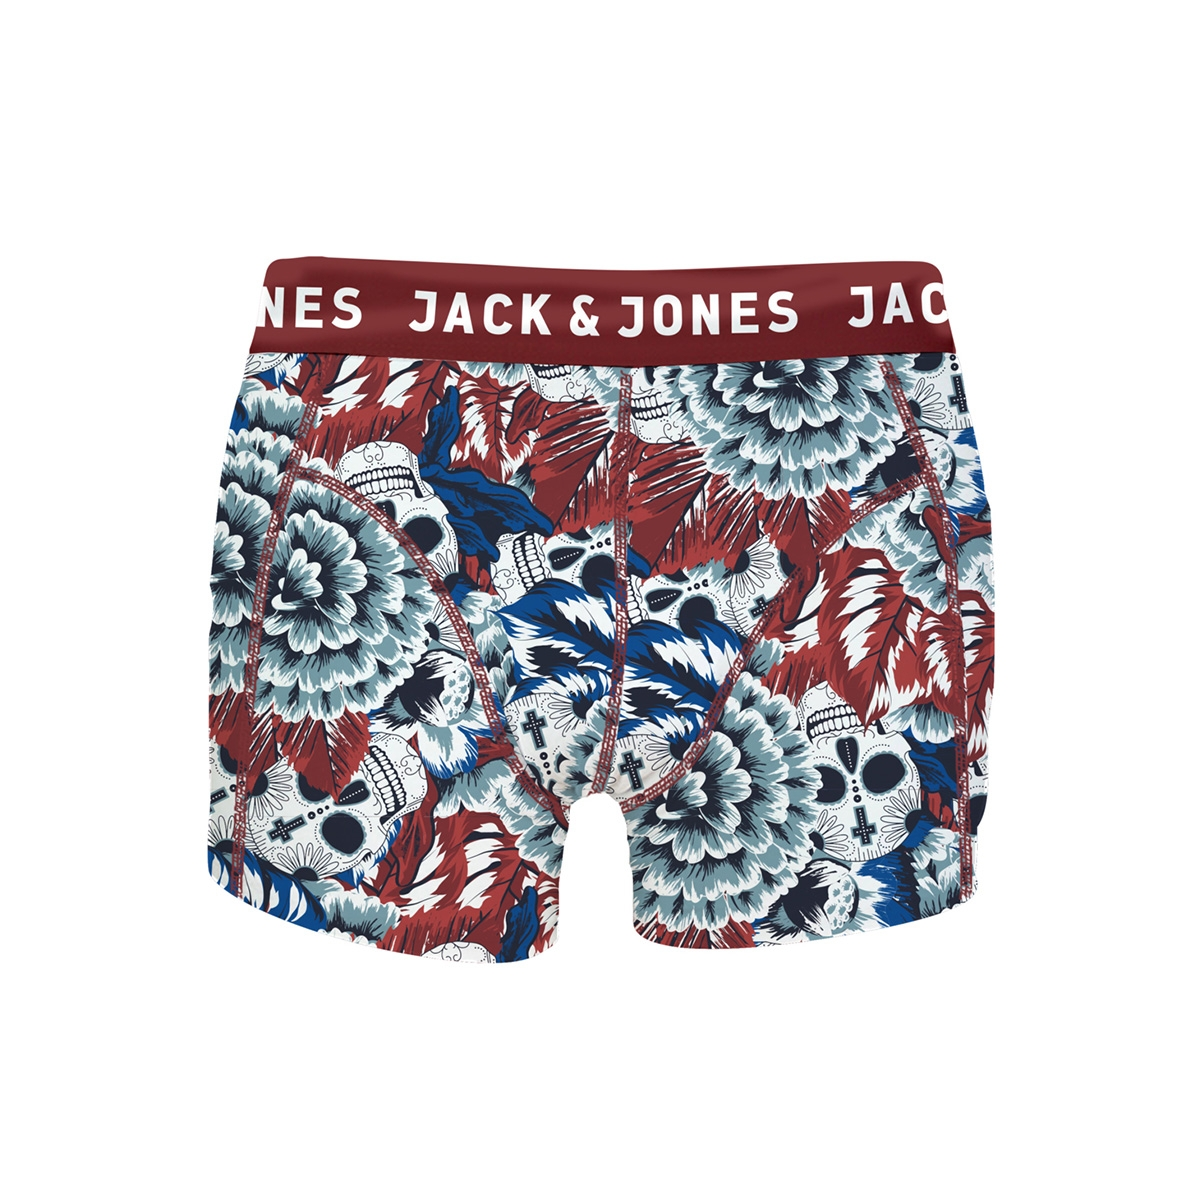 jacpete trunks noos 12140117 jack & jones ondergoed rosewood